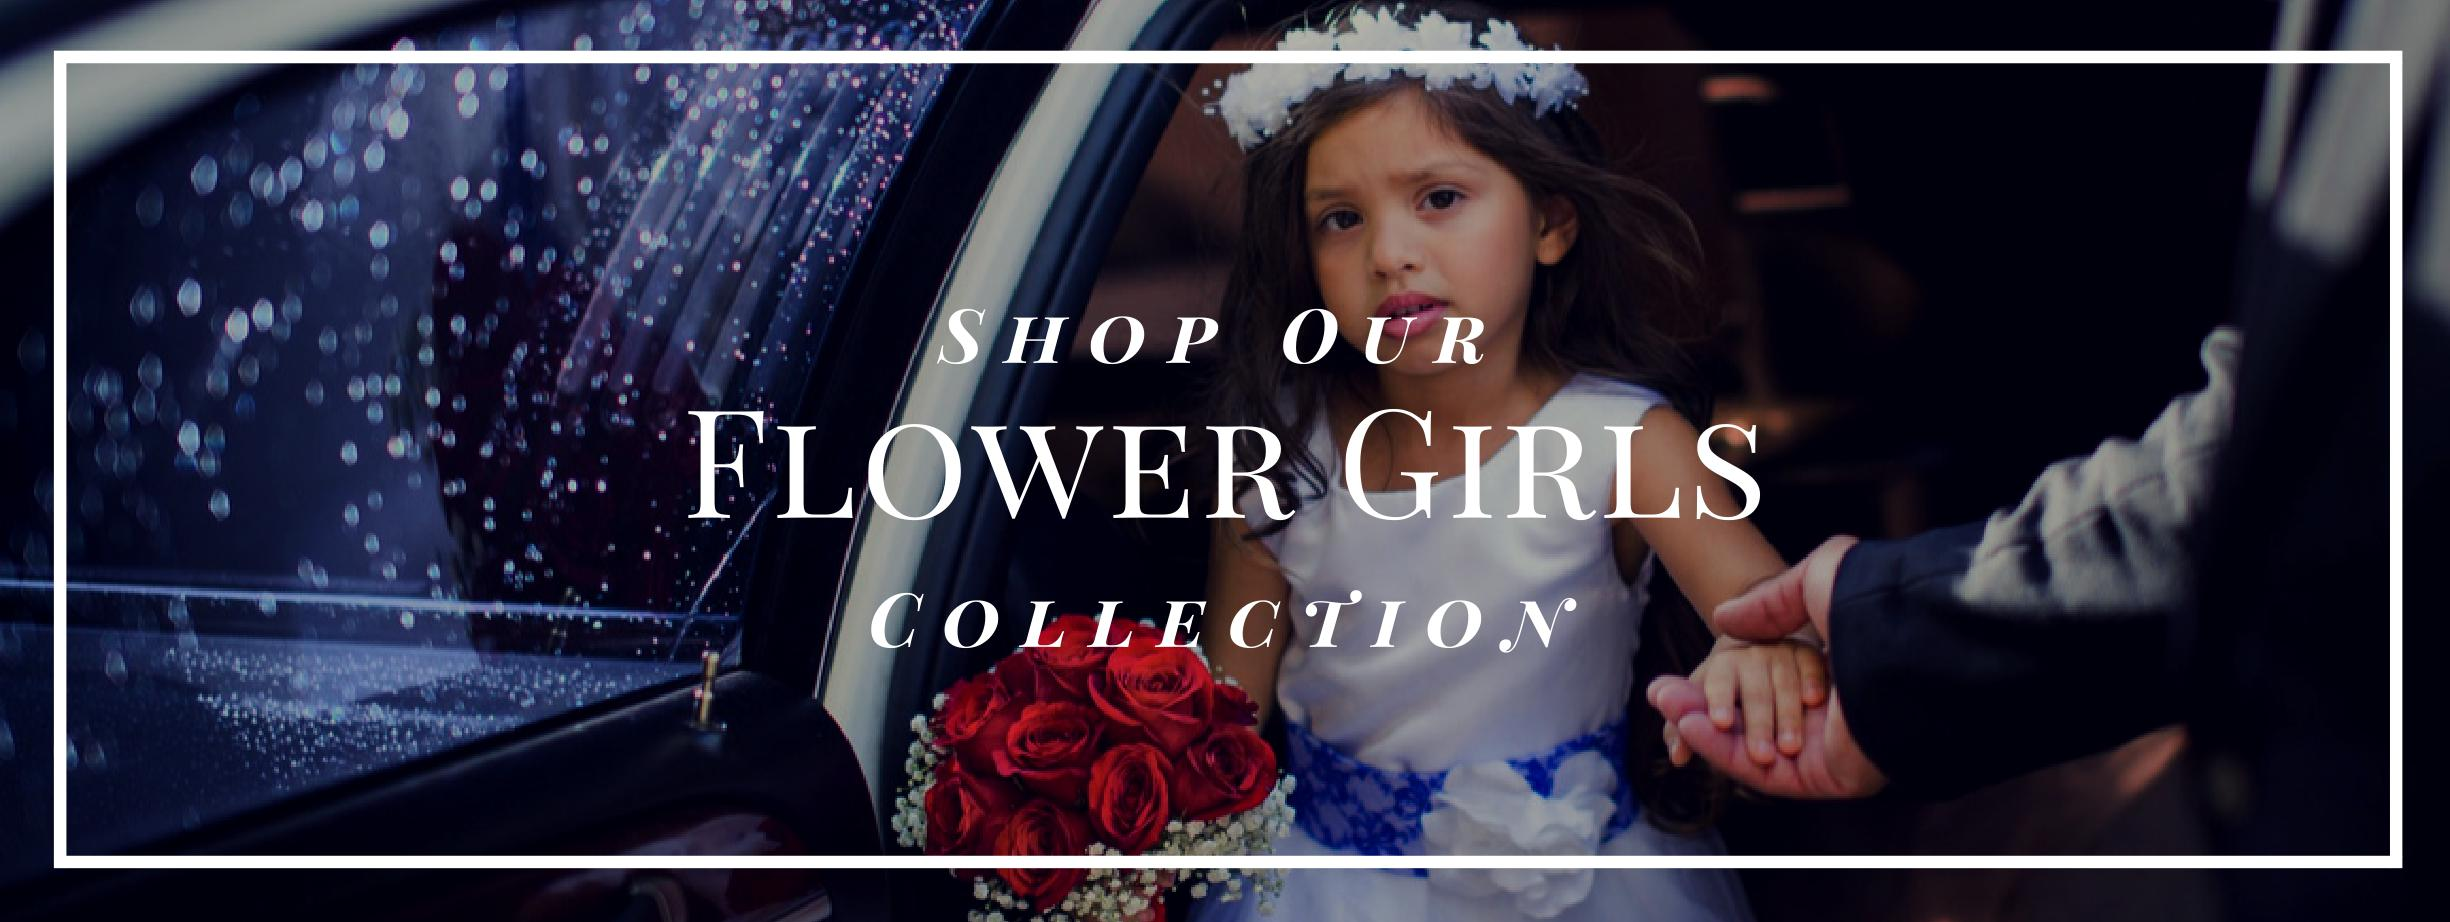 Banner 1 - Shop Flower Girl Collection